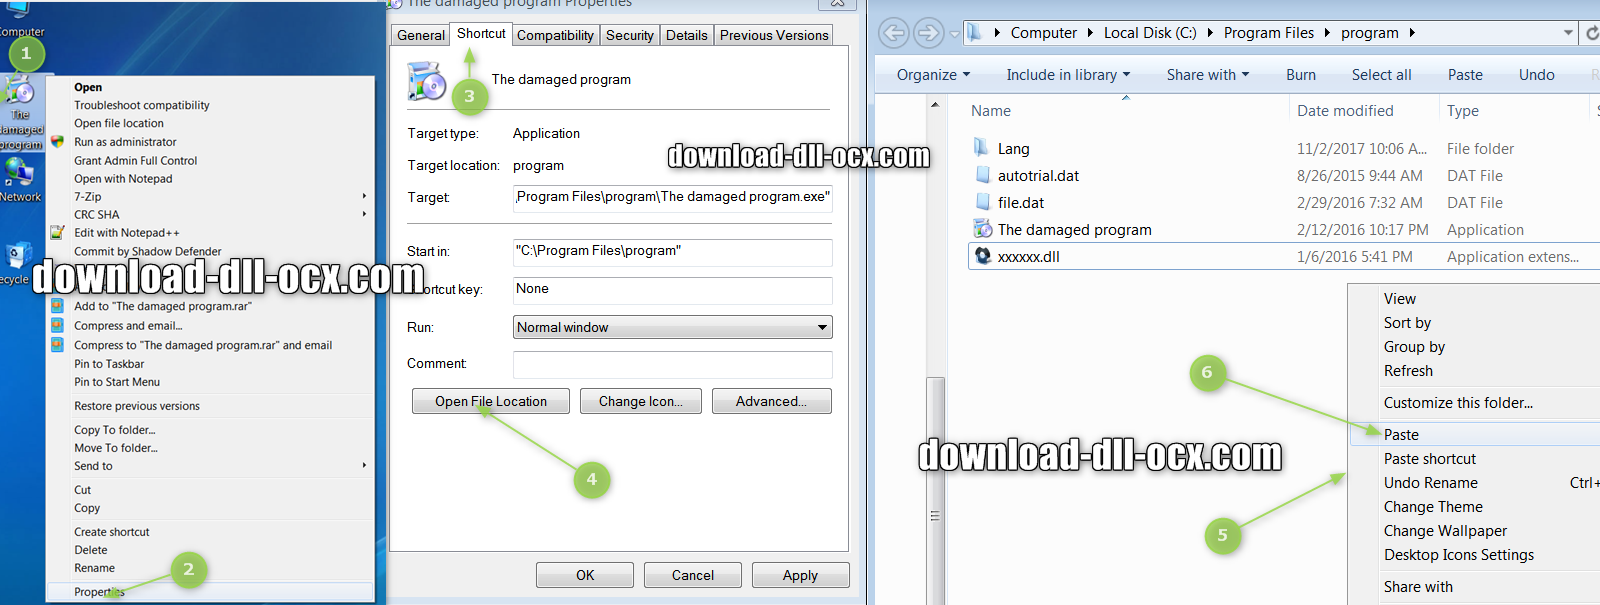 how to install Mqsnap.dll file? for fix missing